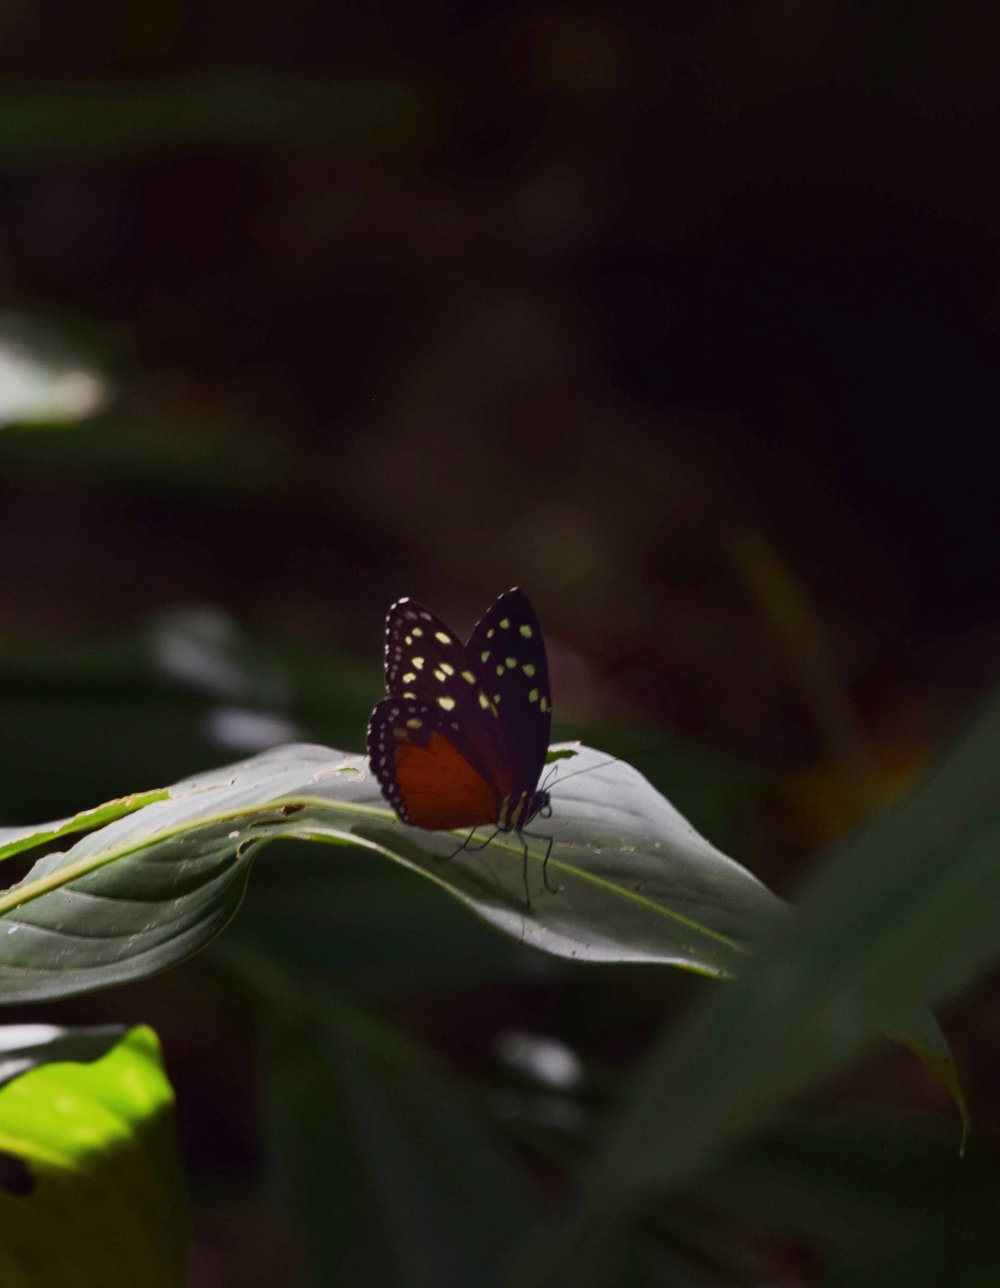 costa-rica-animals-insects-butterfly.jpg